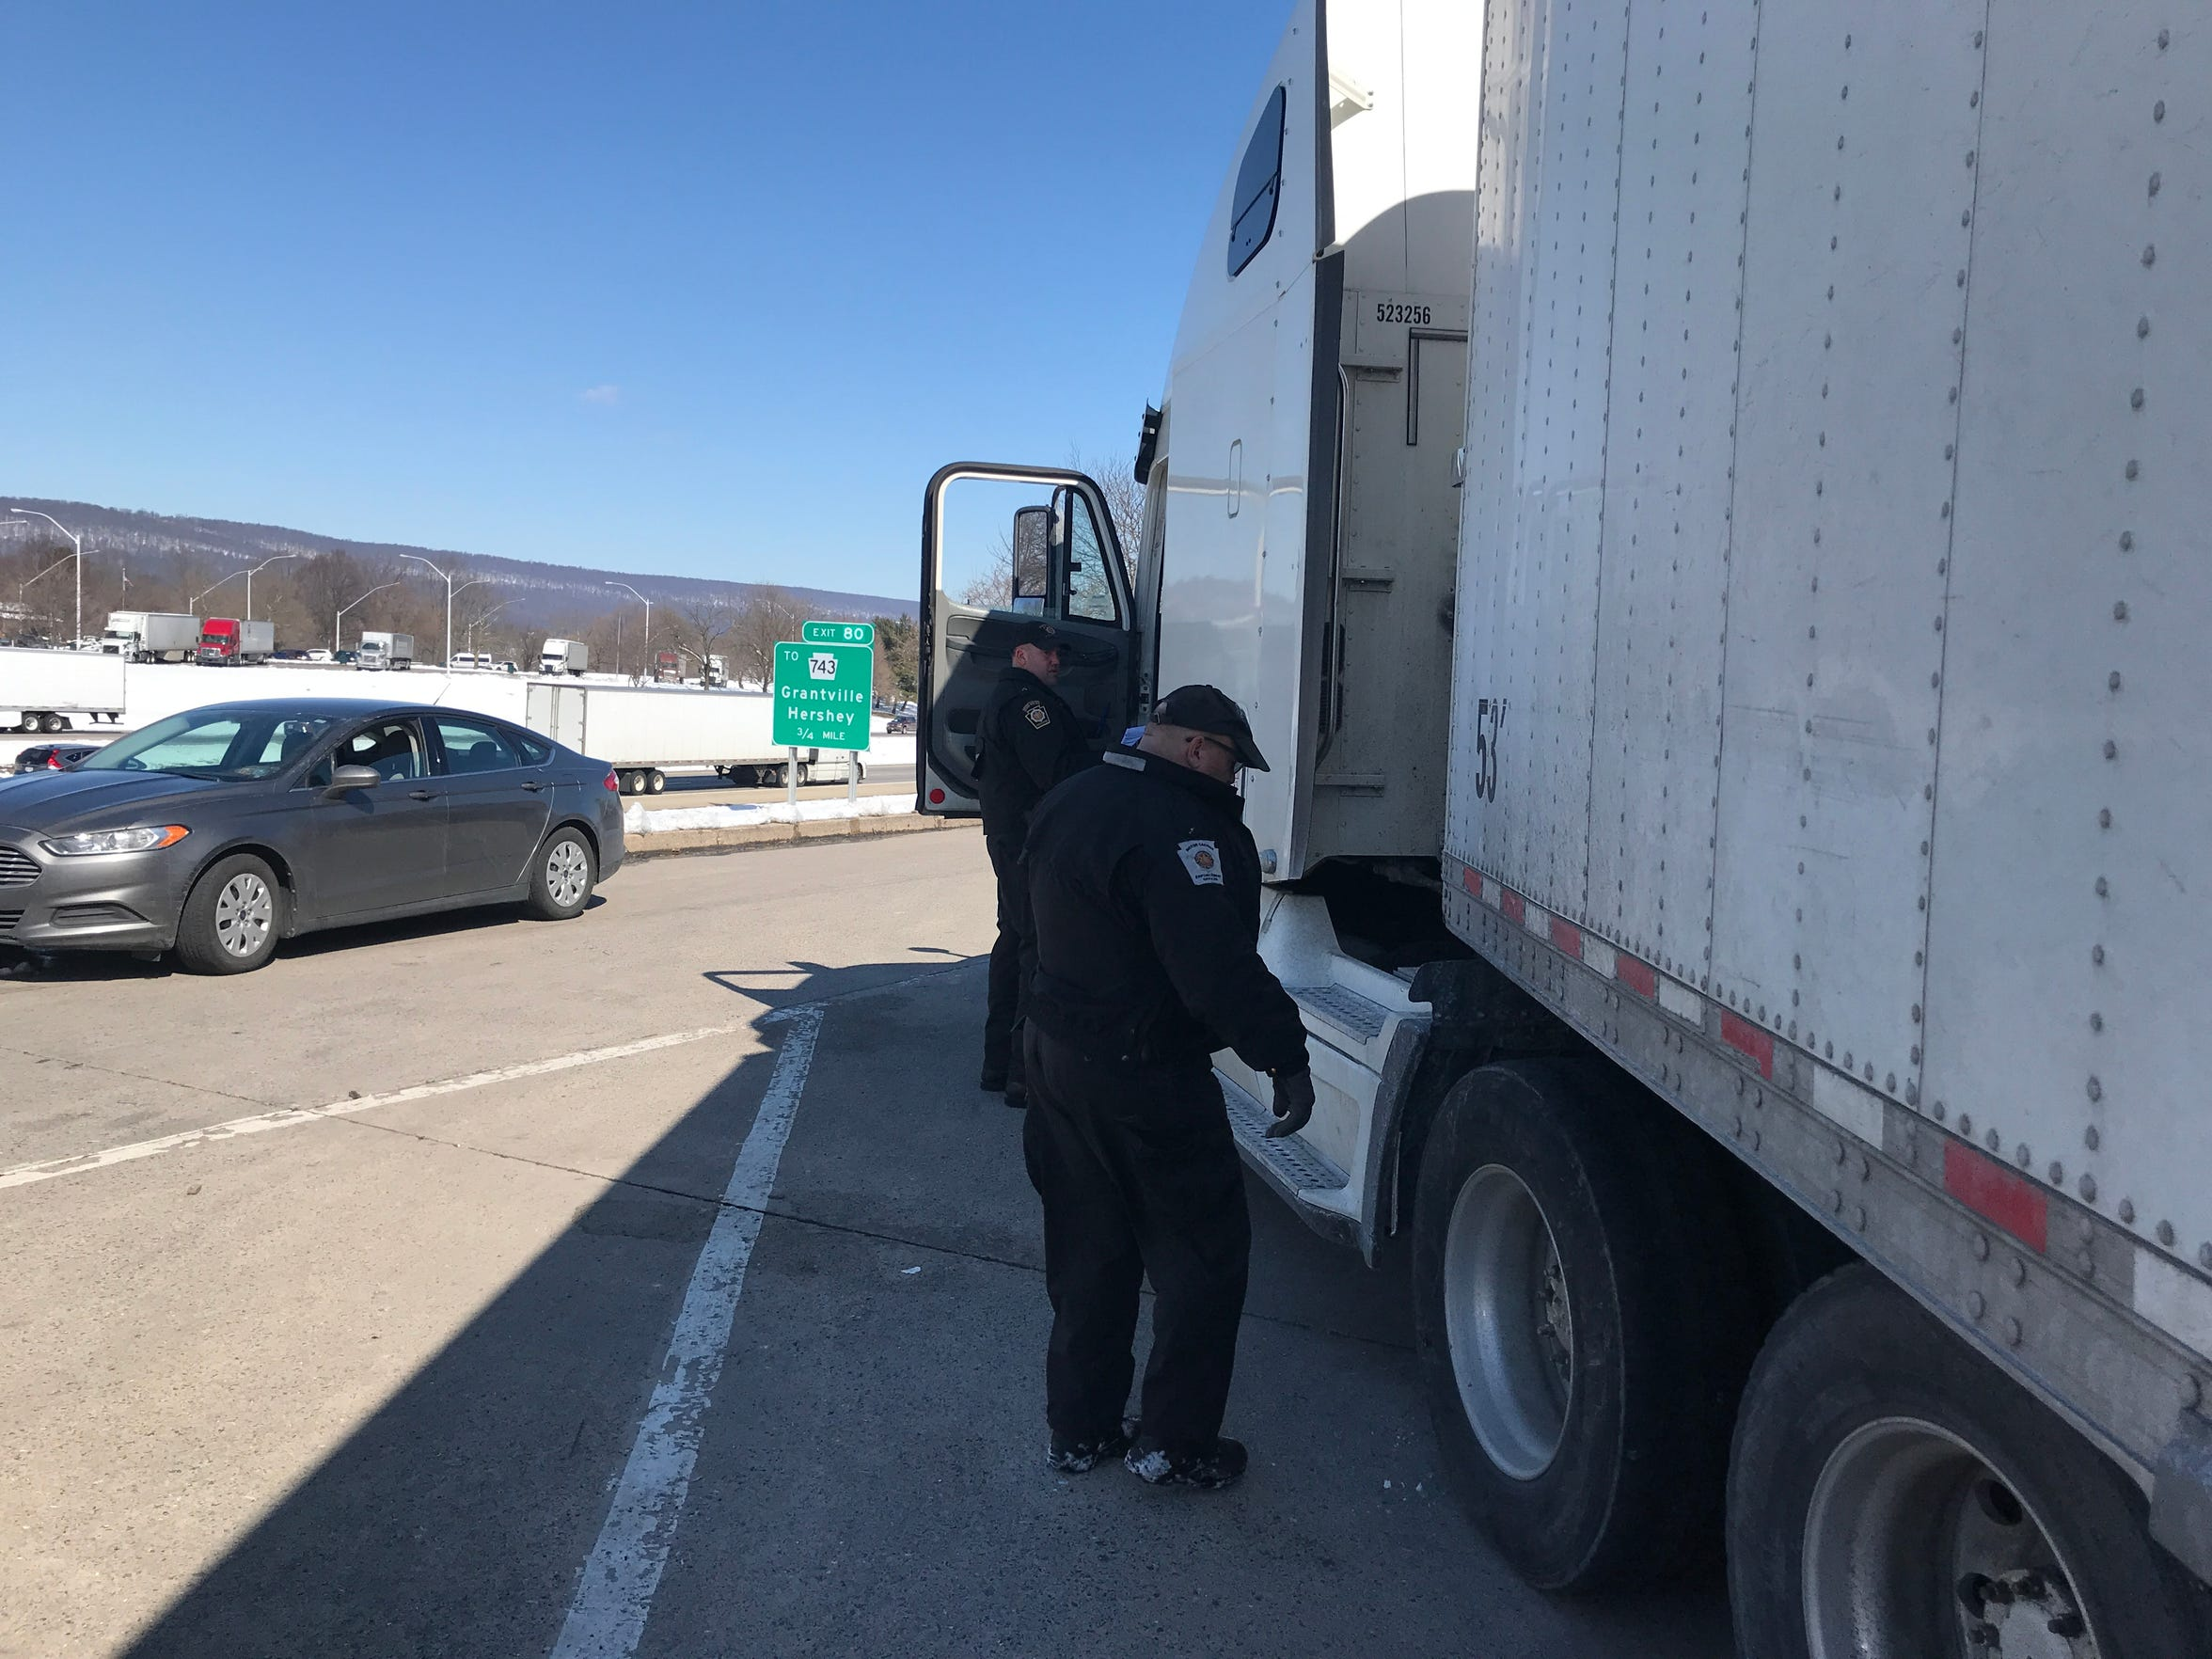 Pennsylvania state troopers run a checkpoint for tractor trailers at the Interstate 81 northbound mile 79.5 checkpoint near Grantville on March 5, 2019. Troopers confirm that drivers have active CDLs during the stop.